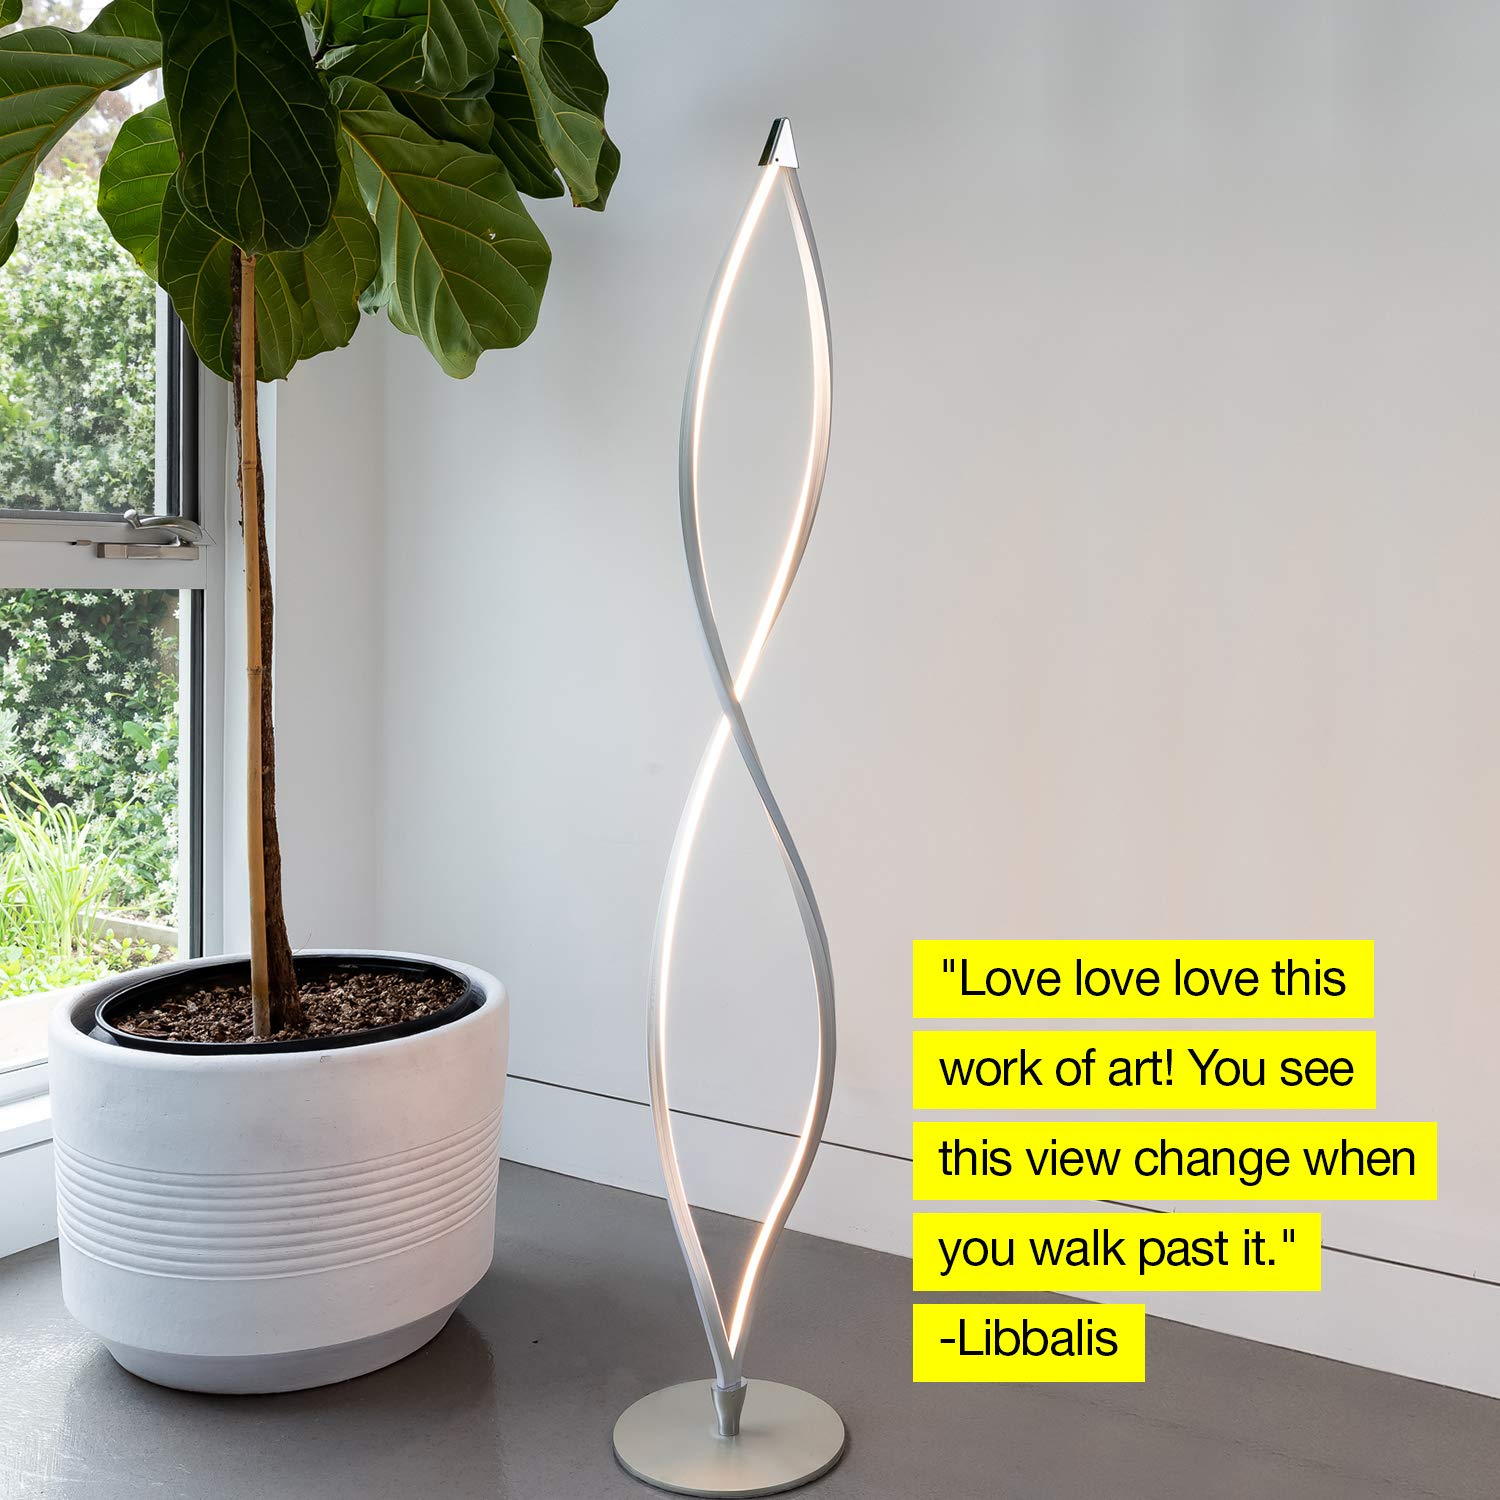 Brightech Twist - Modern LED Living Room Floor Lamp - Bright Contemporary Standing Light - Built in Dimmer Switch with 3 Brightness Settings - Cool, Futuristic Lighting - Silver by Brightech (Image #6)